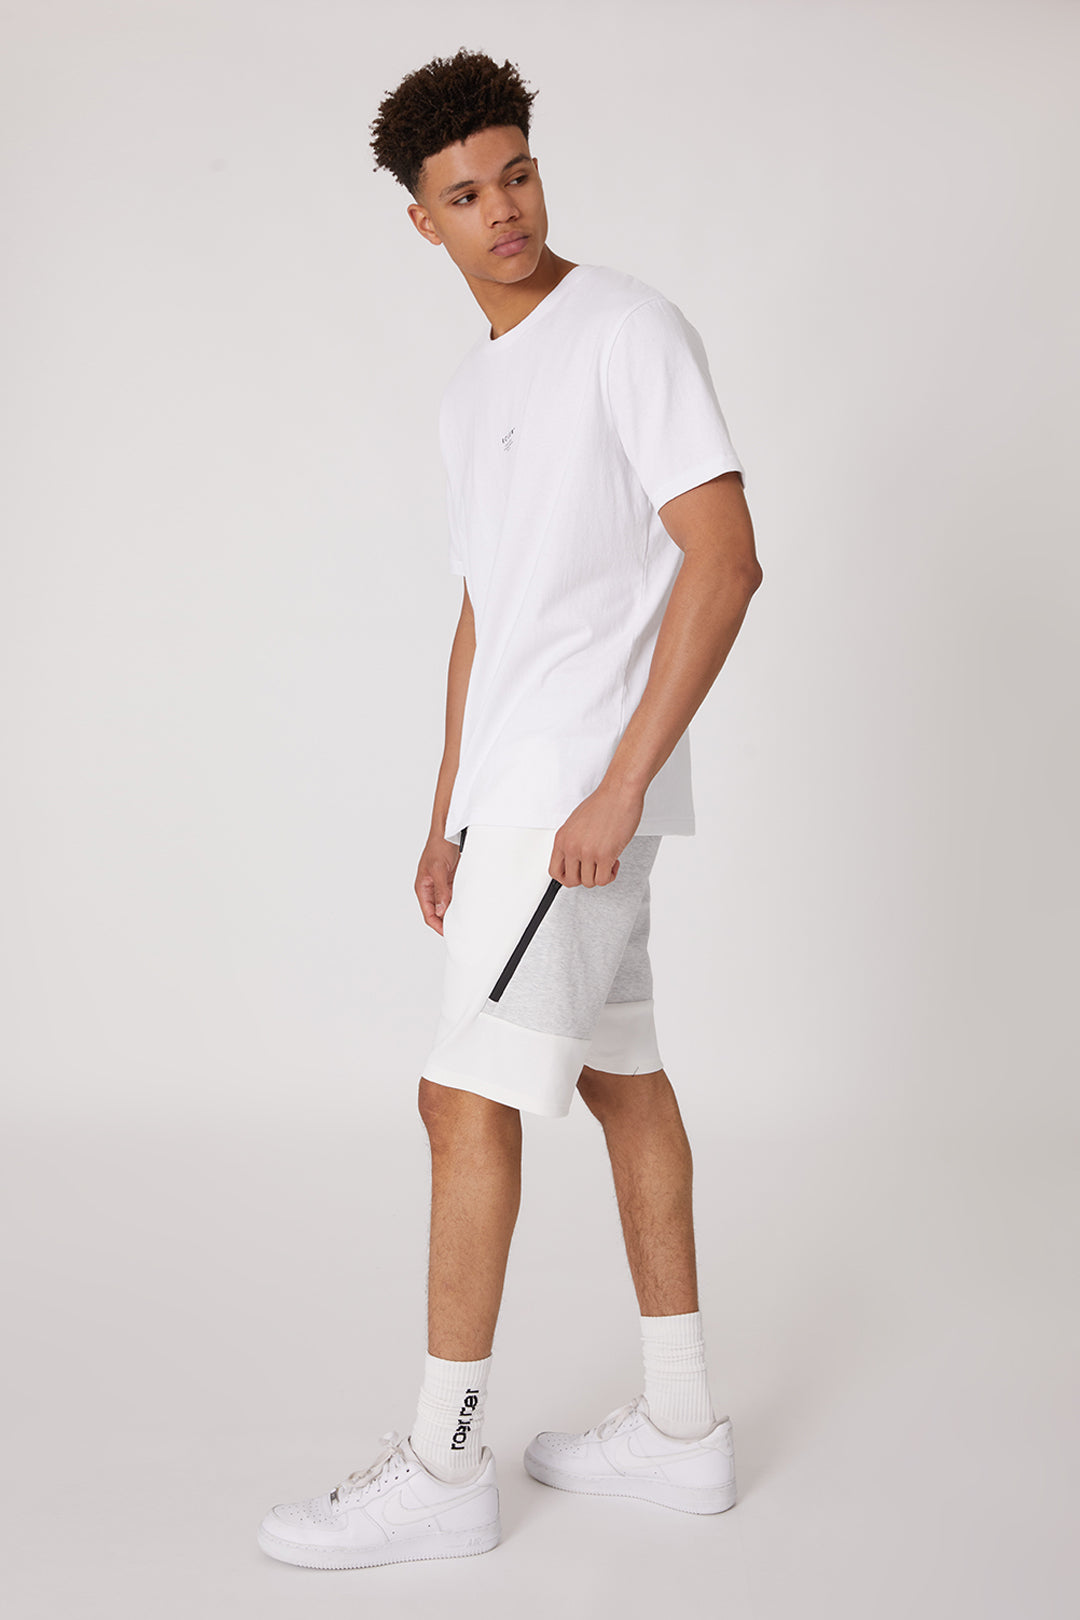 The Contrast Witton Short - White - Roler Clothing